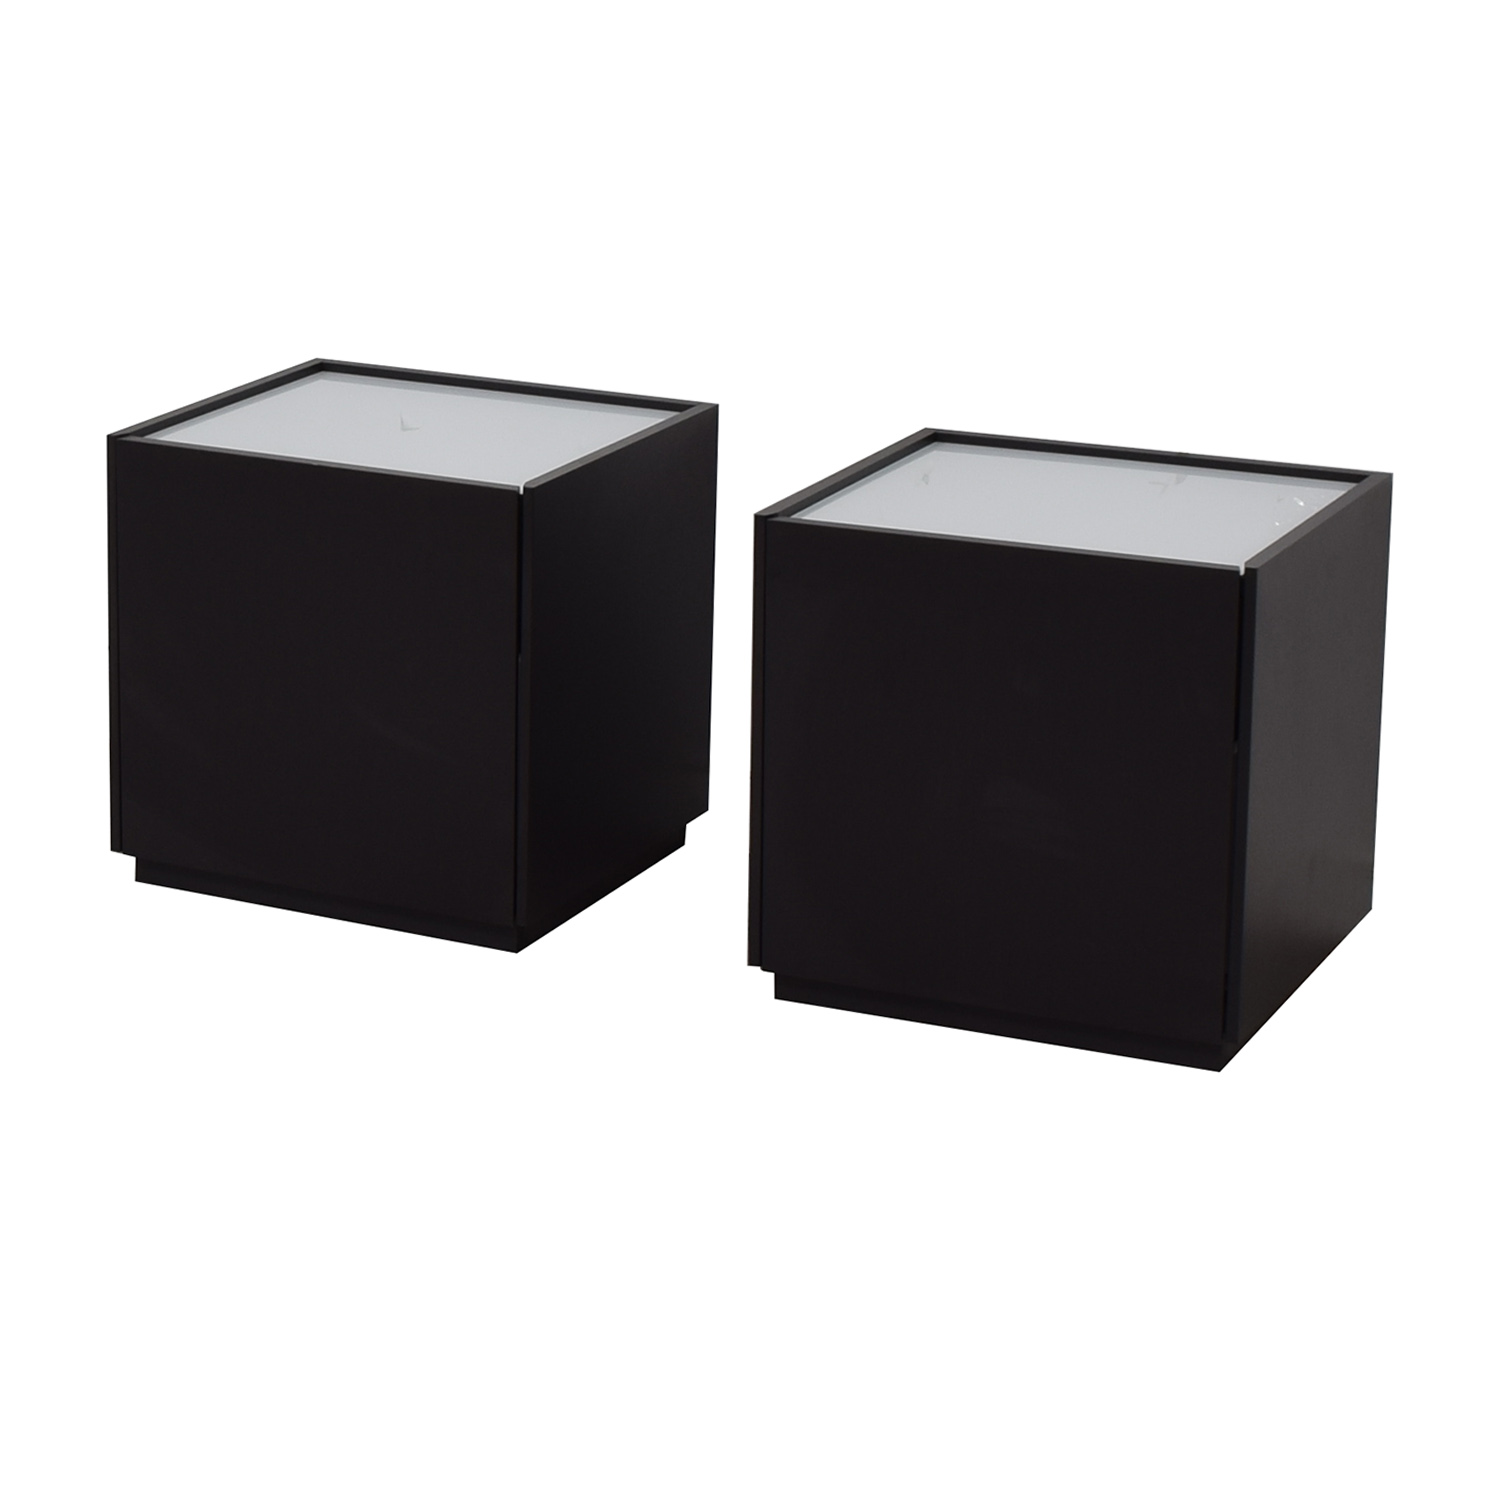 IKEA White and Black Two-Drawer End Tables / End Tables